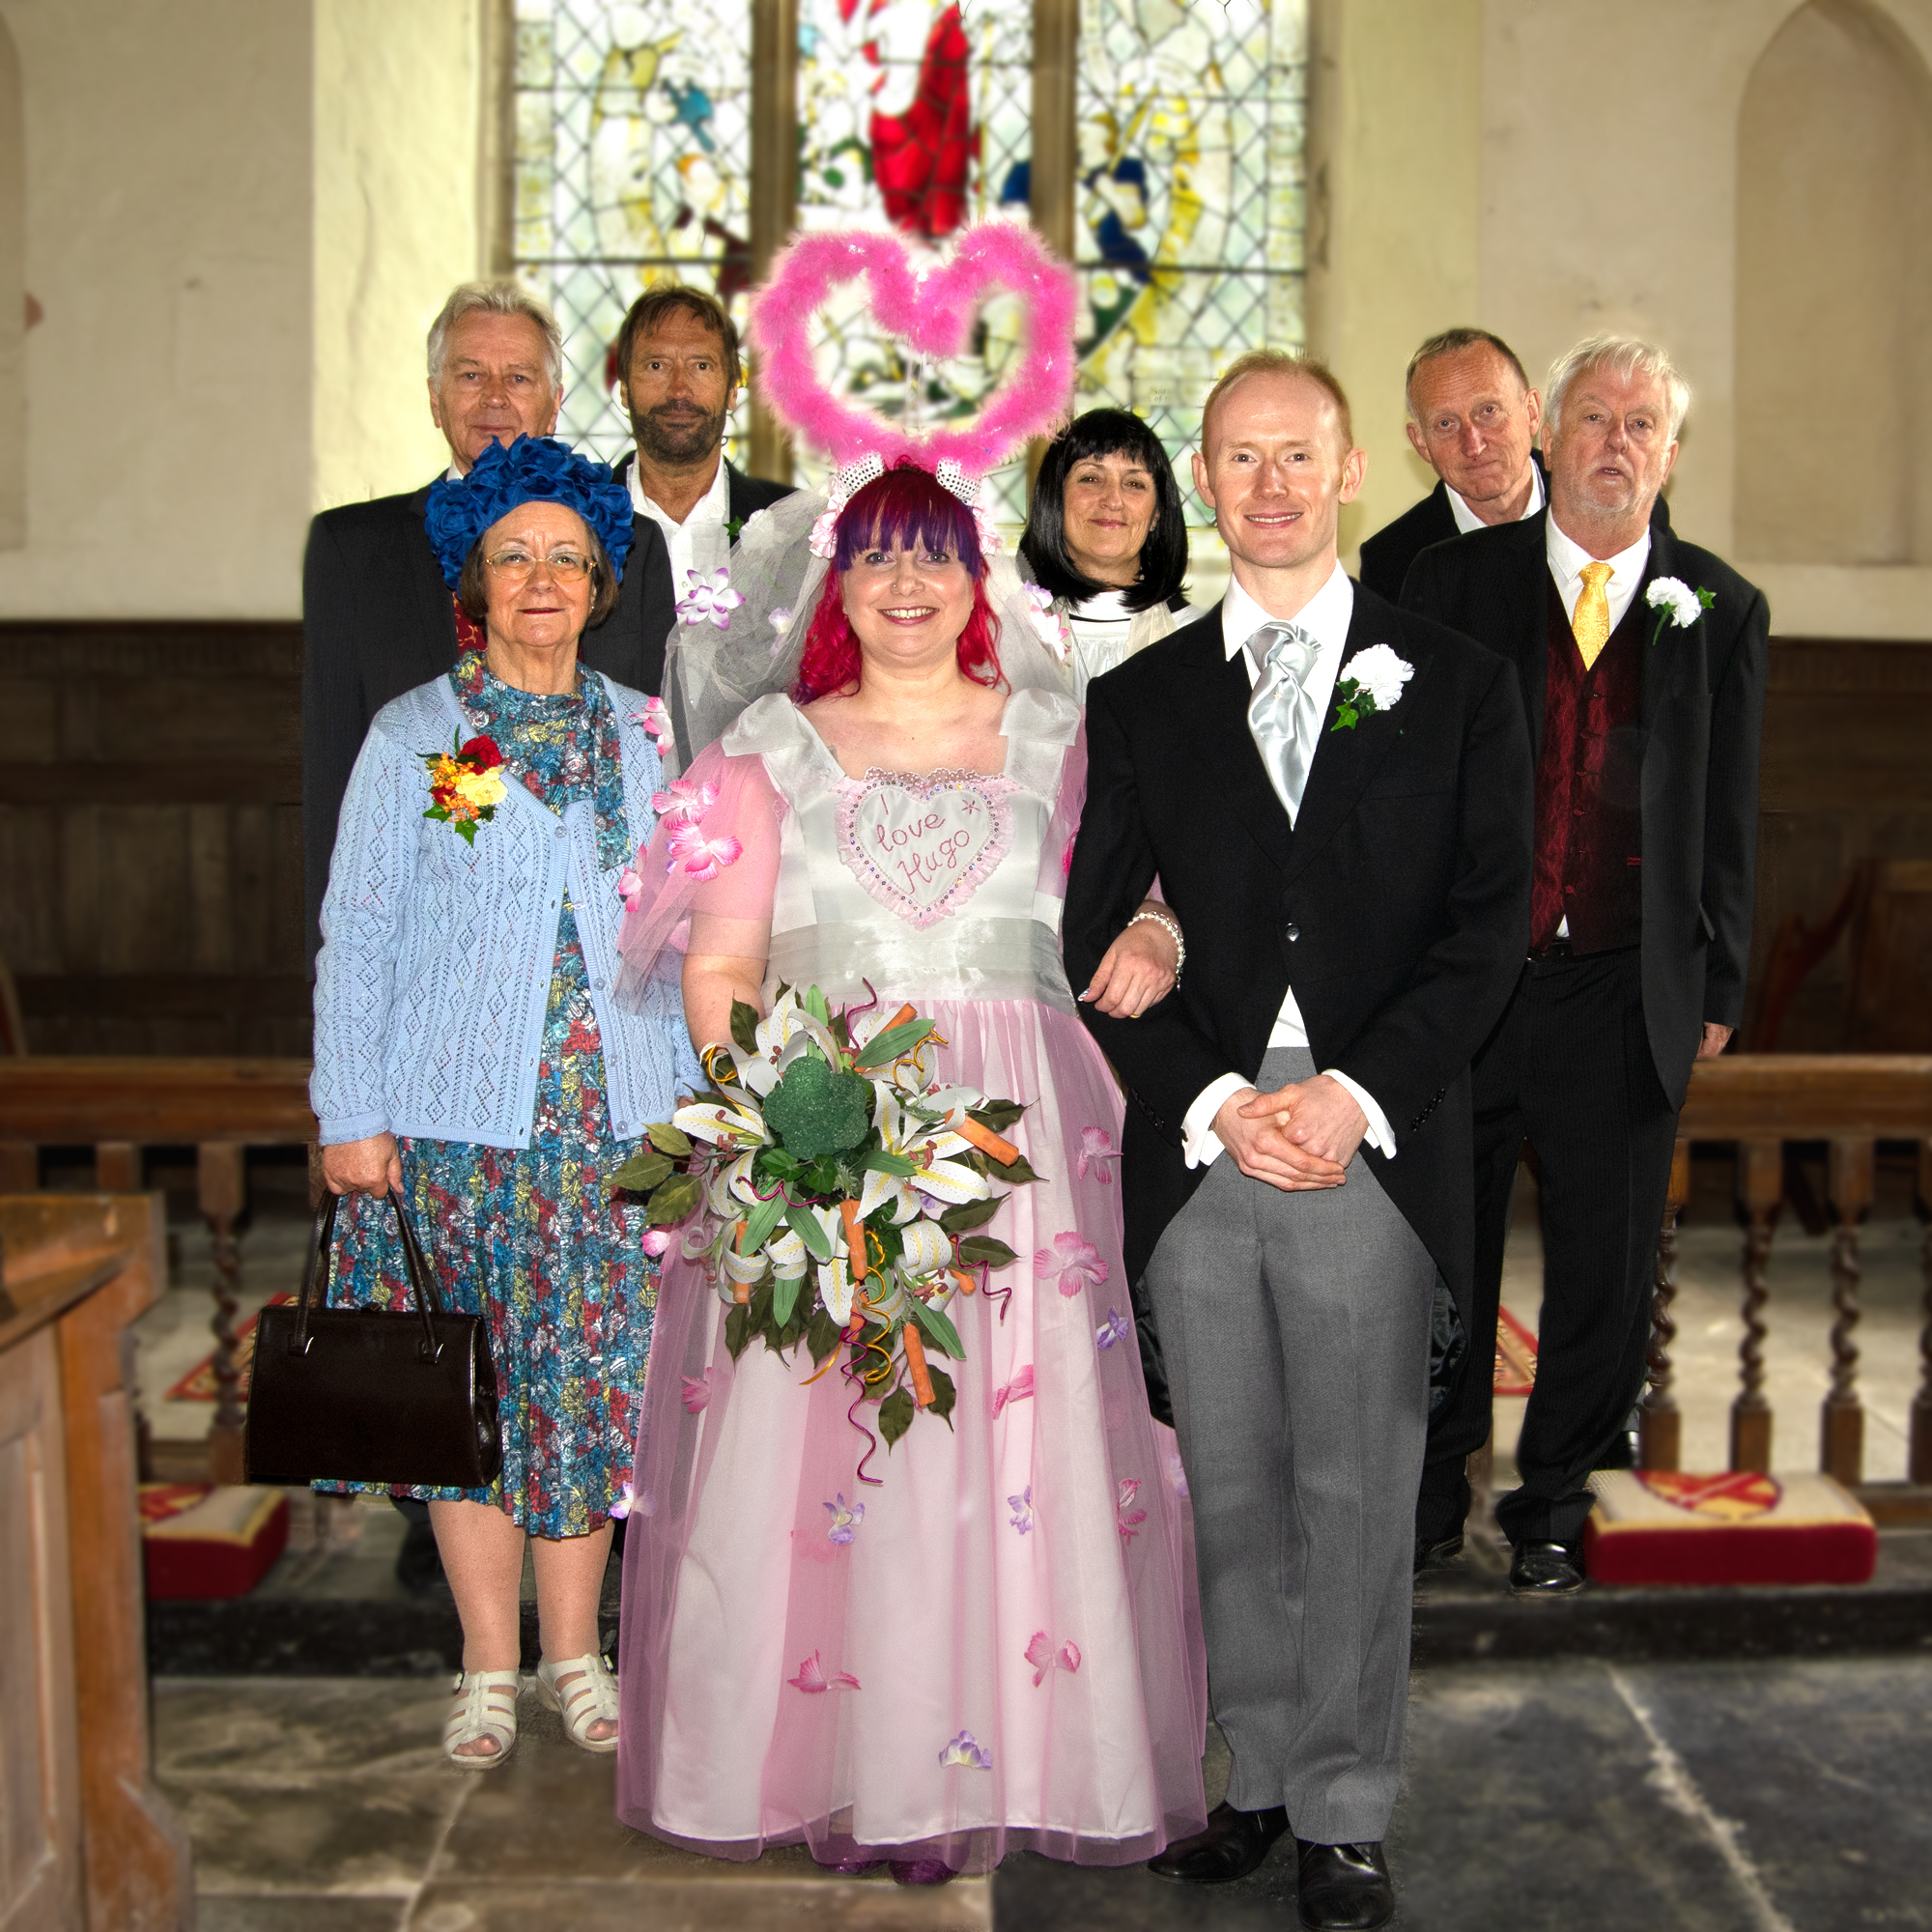 Cast of Vicar of Dibley at Old St Mary's Church, West Bergholt Picture by Catherine Streatfield